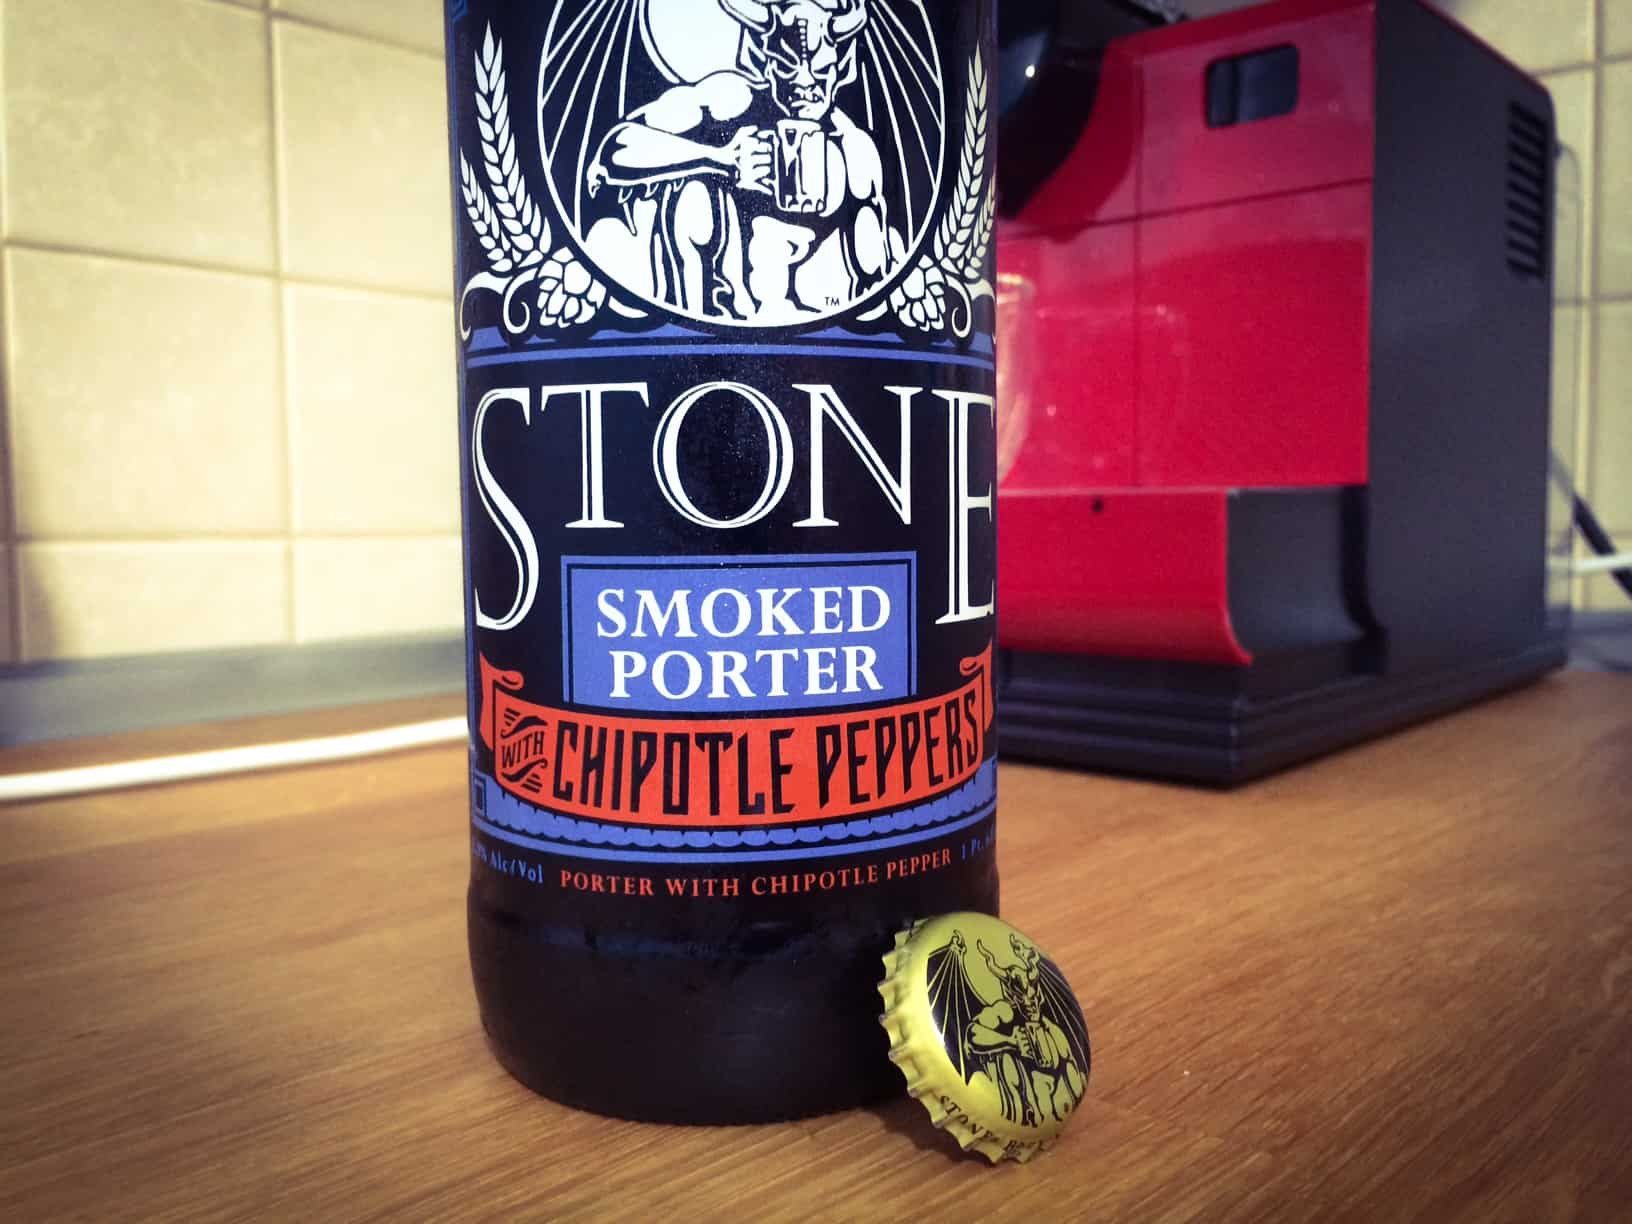 Photo of Stone Smoked Porter Chipotle Pepper, prima bere cu ardei iute